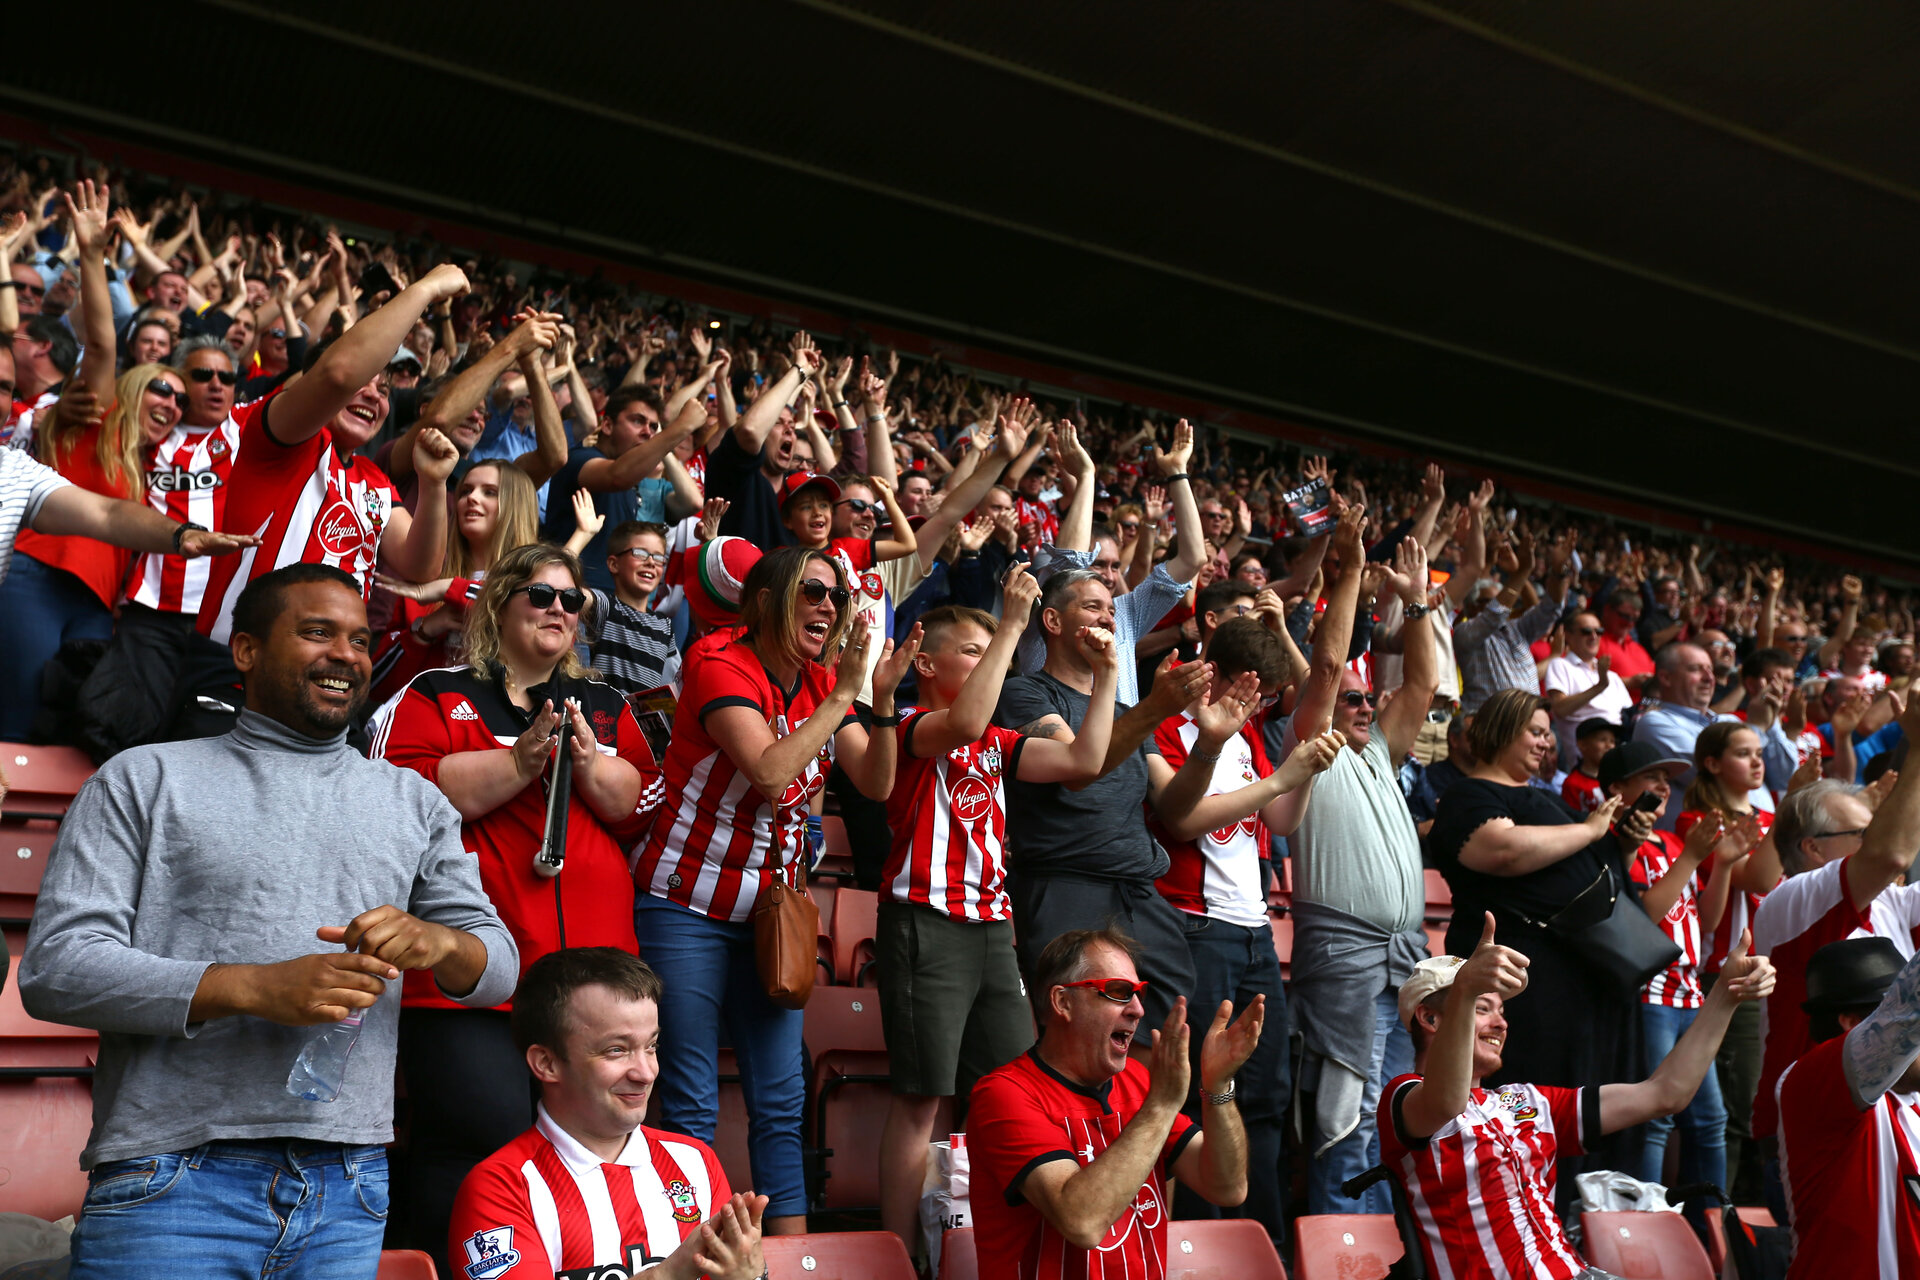 SOUTHAMPTON, ENGLAND - MAY 12: Nathan Redmond scores and fans celebrate during the Premier League match between Southampton FC and Huddersfield Town at St Mary's Stadium on May 12, 2019 in Southampton, United Kingdom. (Photo by James Bridle - Southampton FC/Southampton FC via Getty Images)